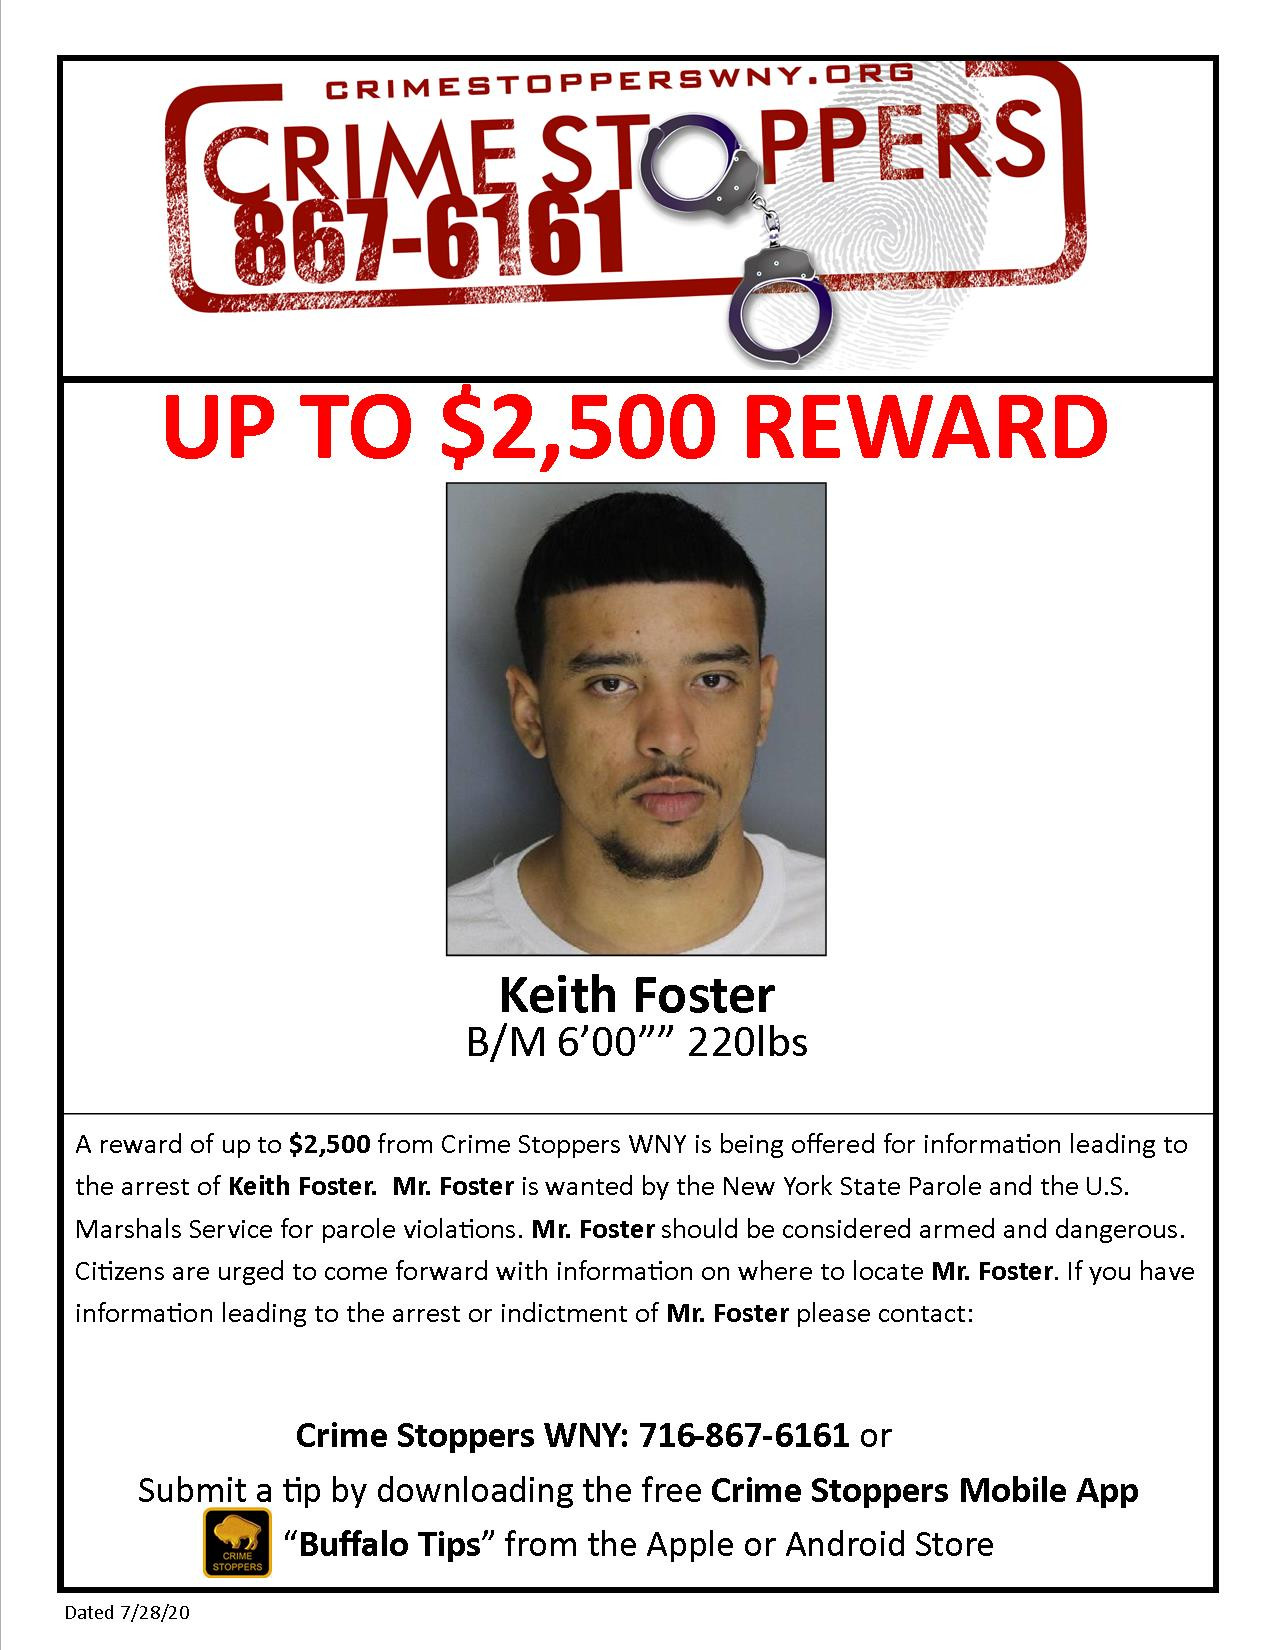 CrimeStoppers_KeithFoster